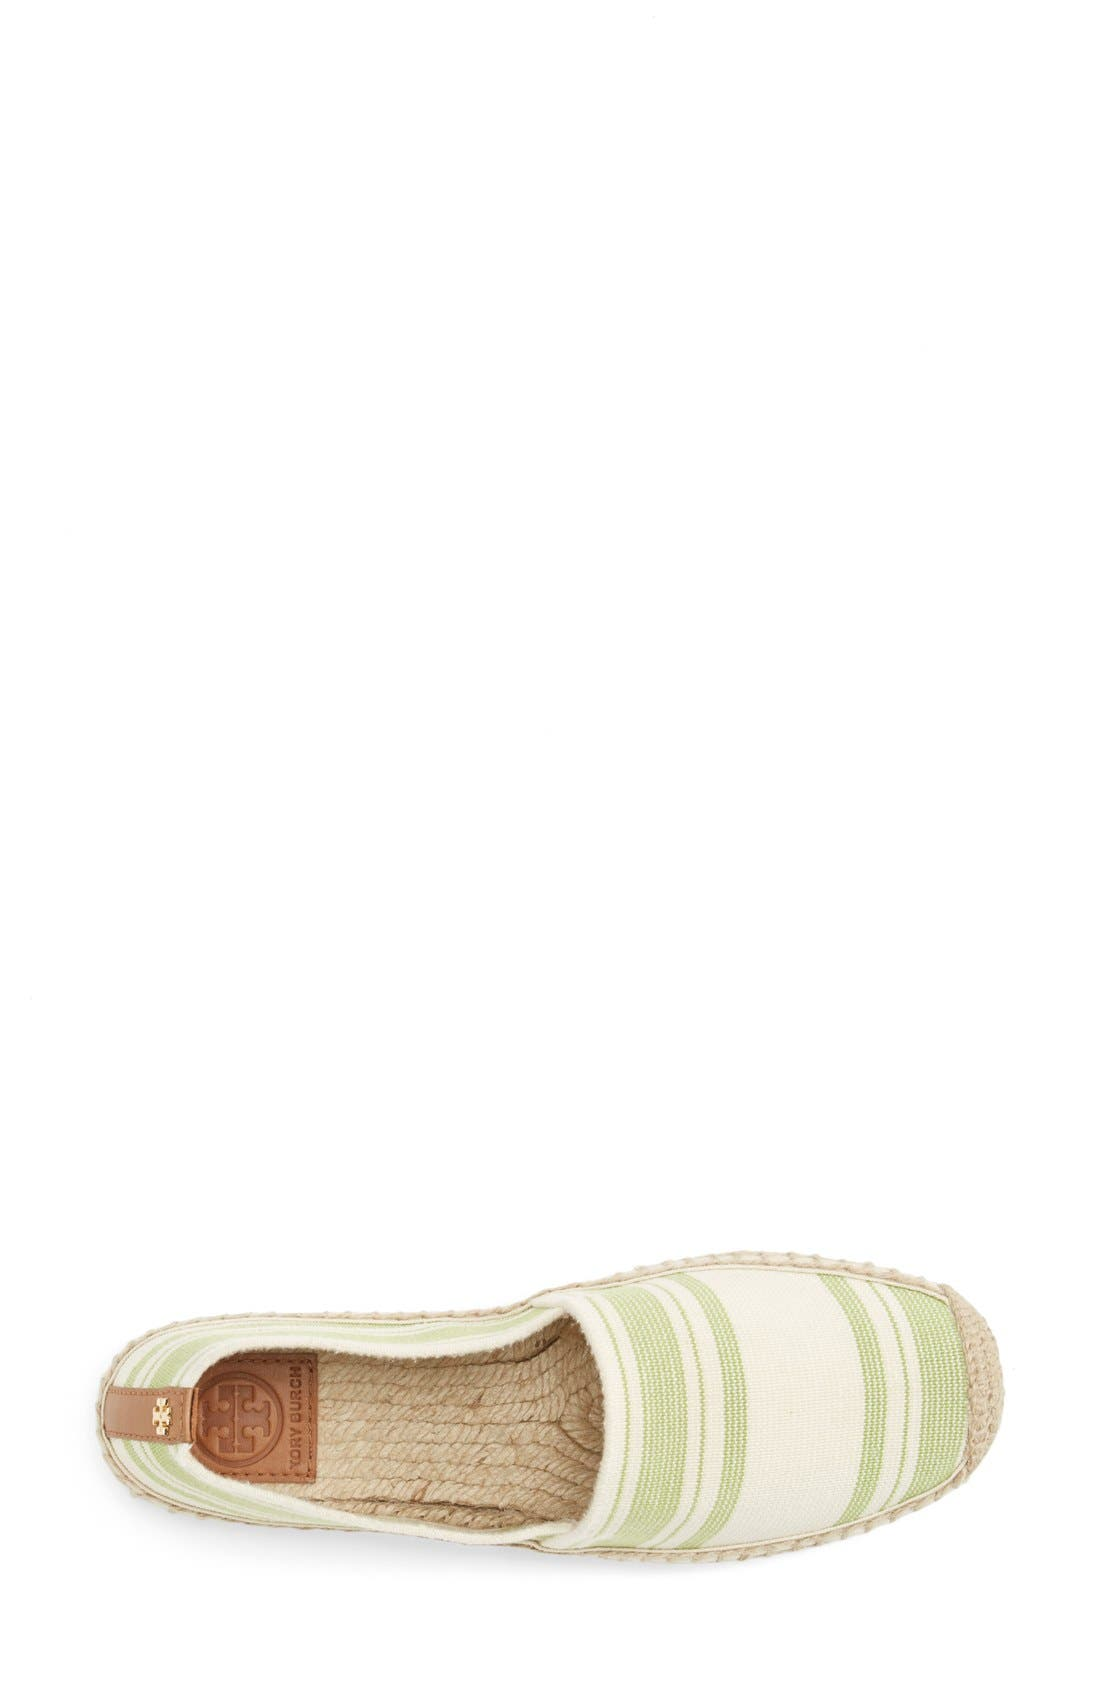 Alternate Image 3  - Tory Burch Stripe Espadrille Flat (Women)